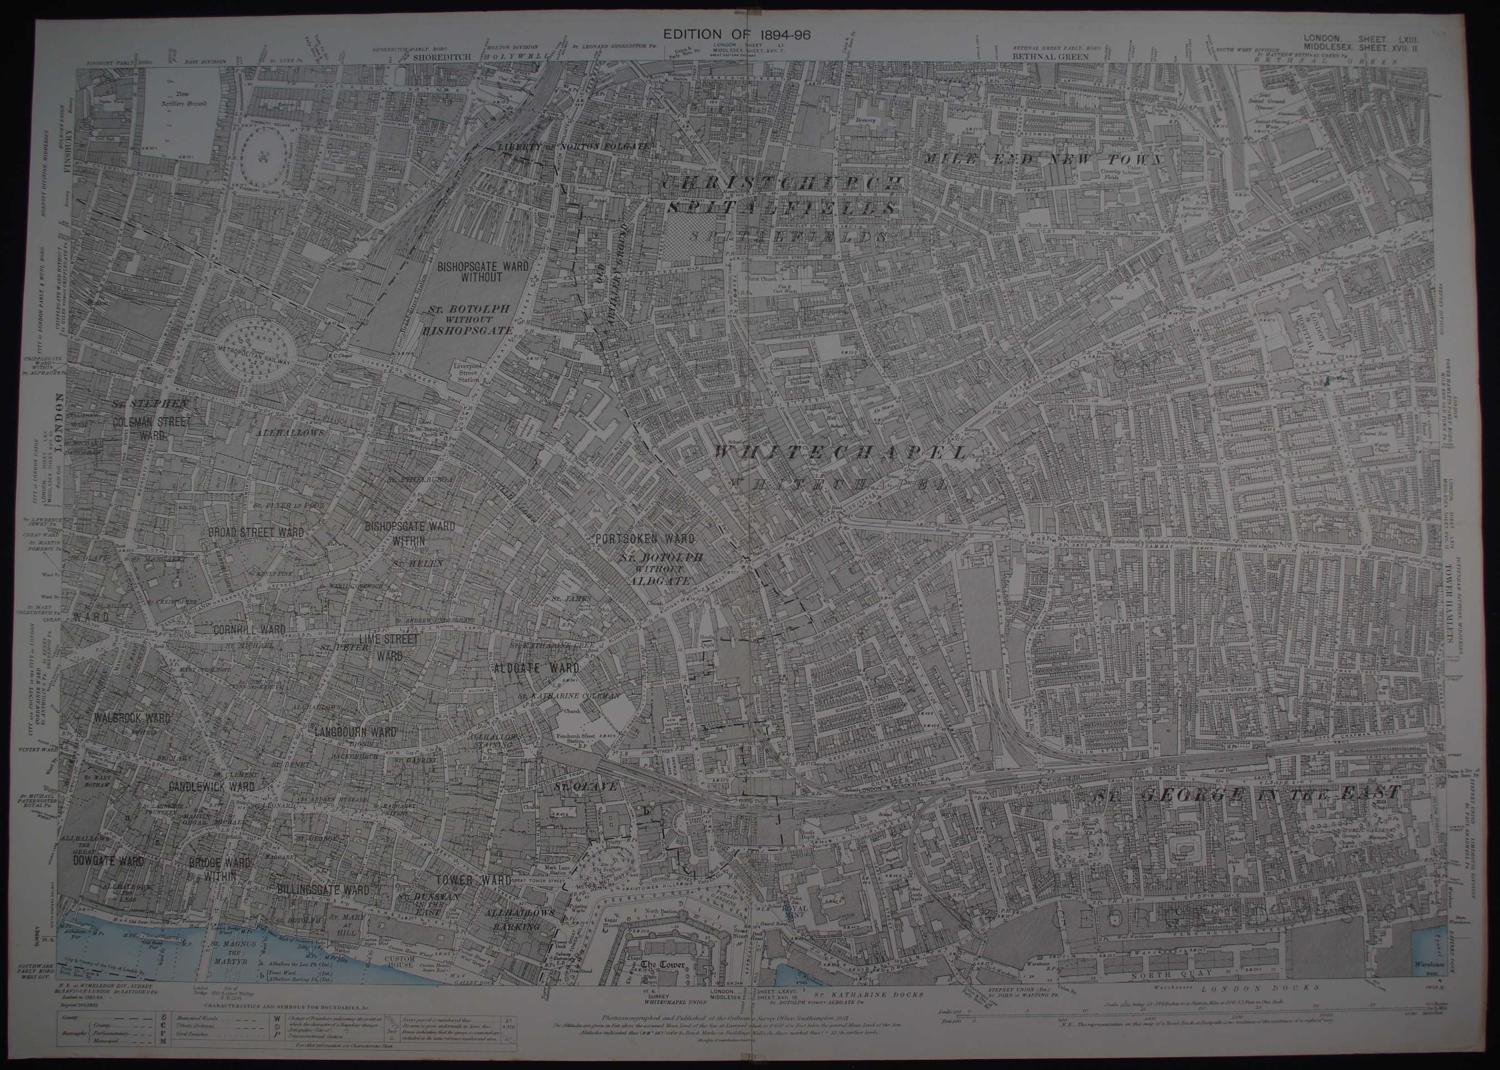 London. Sheet  LXIII.  Middlesex.  Sheet XVII.  II by Ordnance Survey Edition of 1894-96